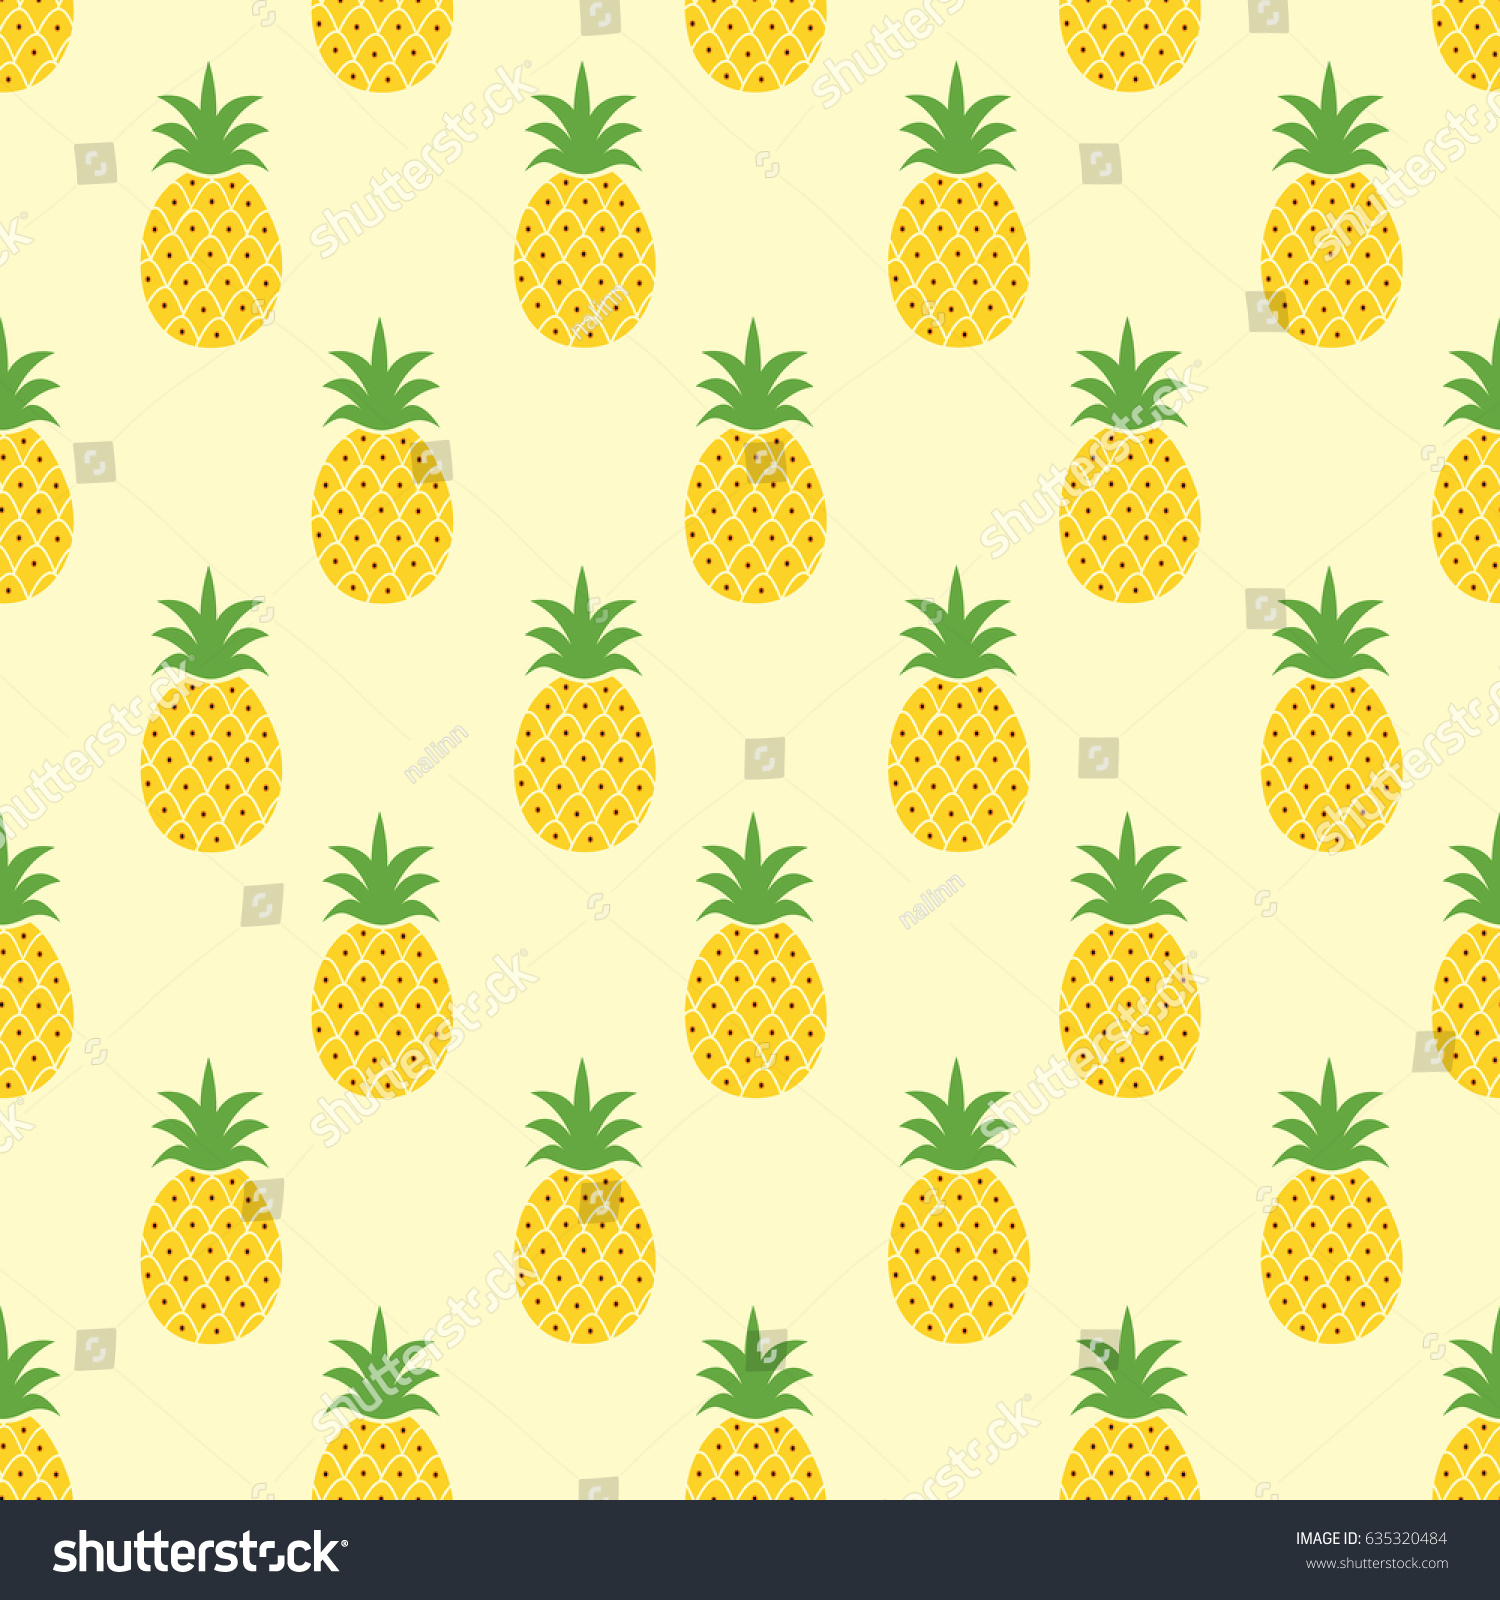 Seamless Pineapple Pattern Cute Doodle For Textile Fabric Or Wallpaper Backgrounds